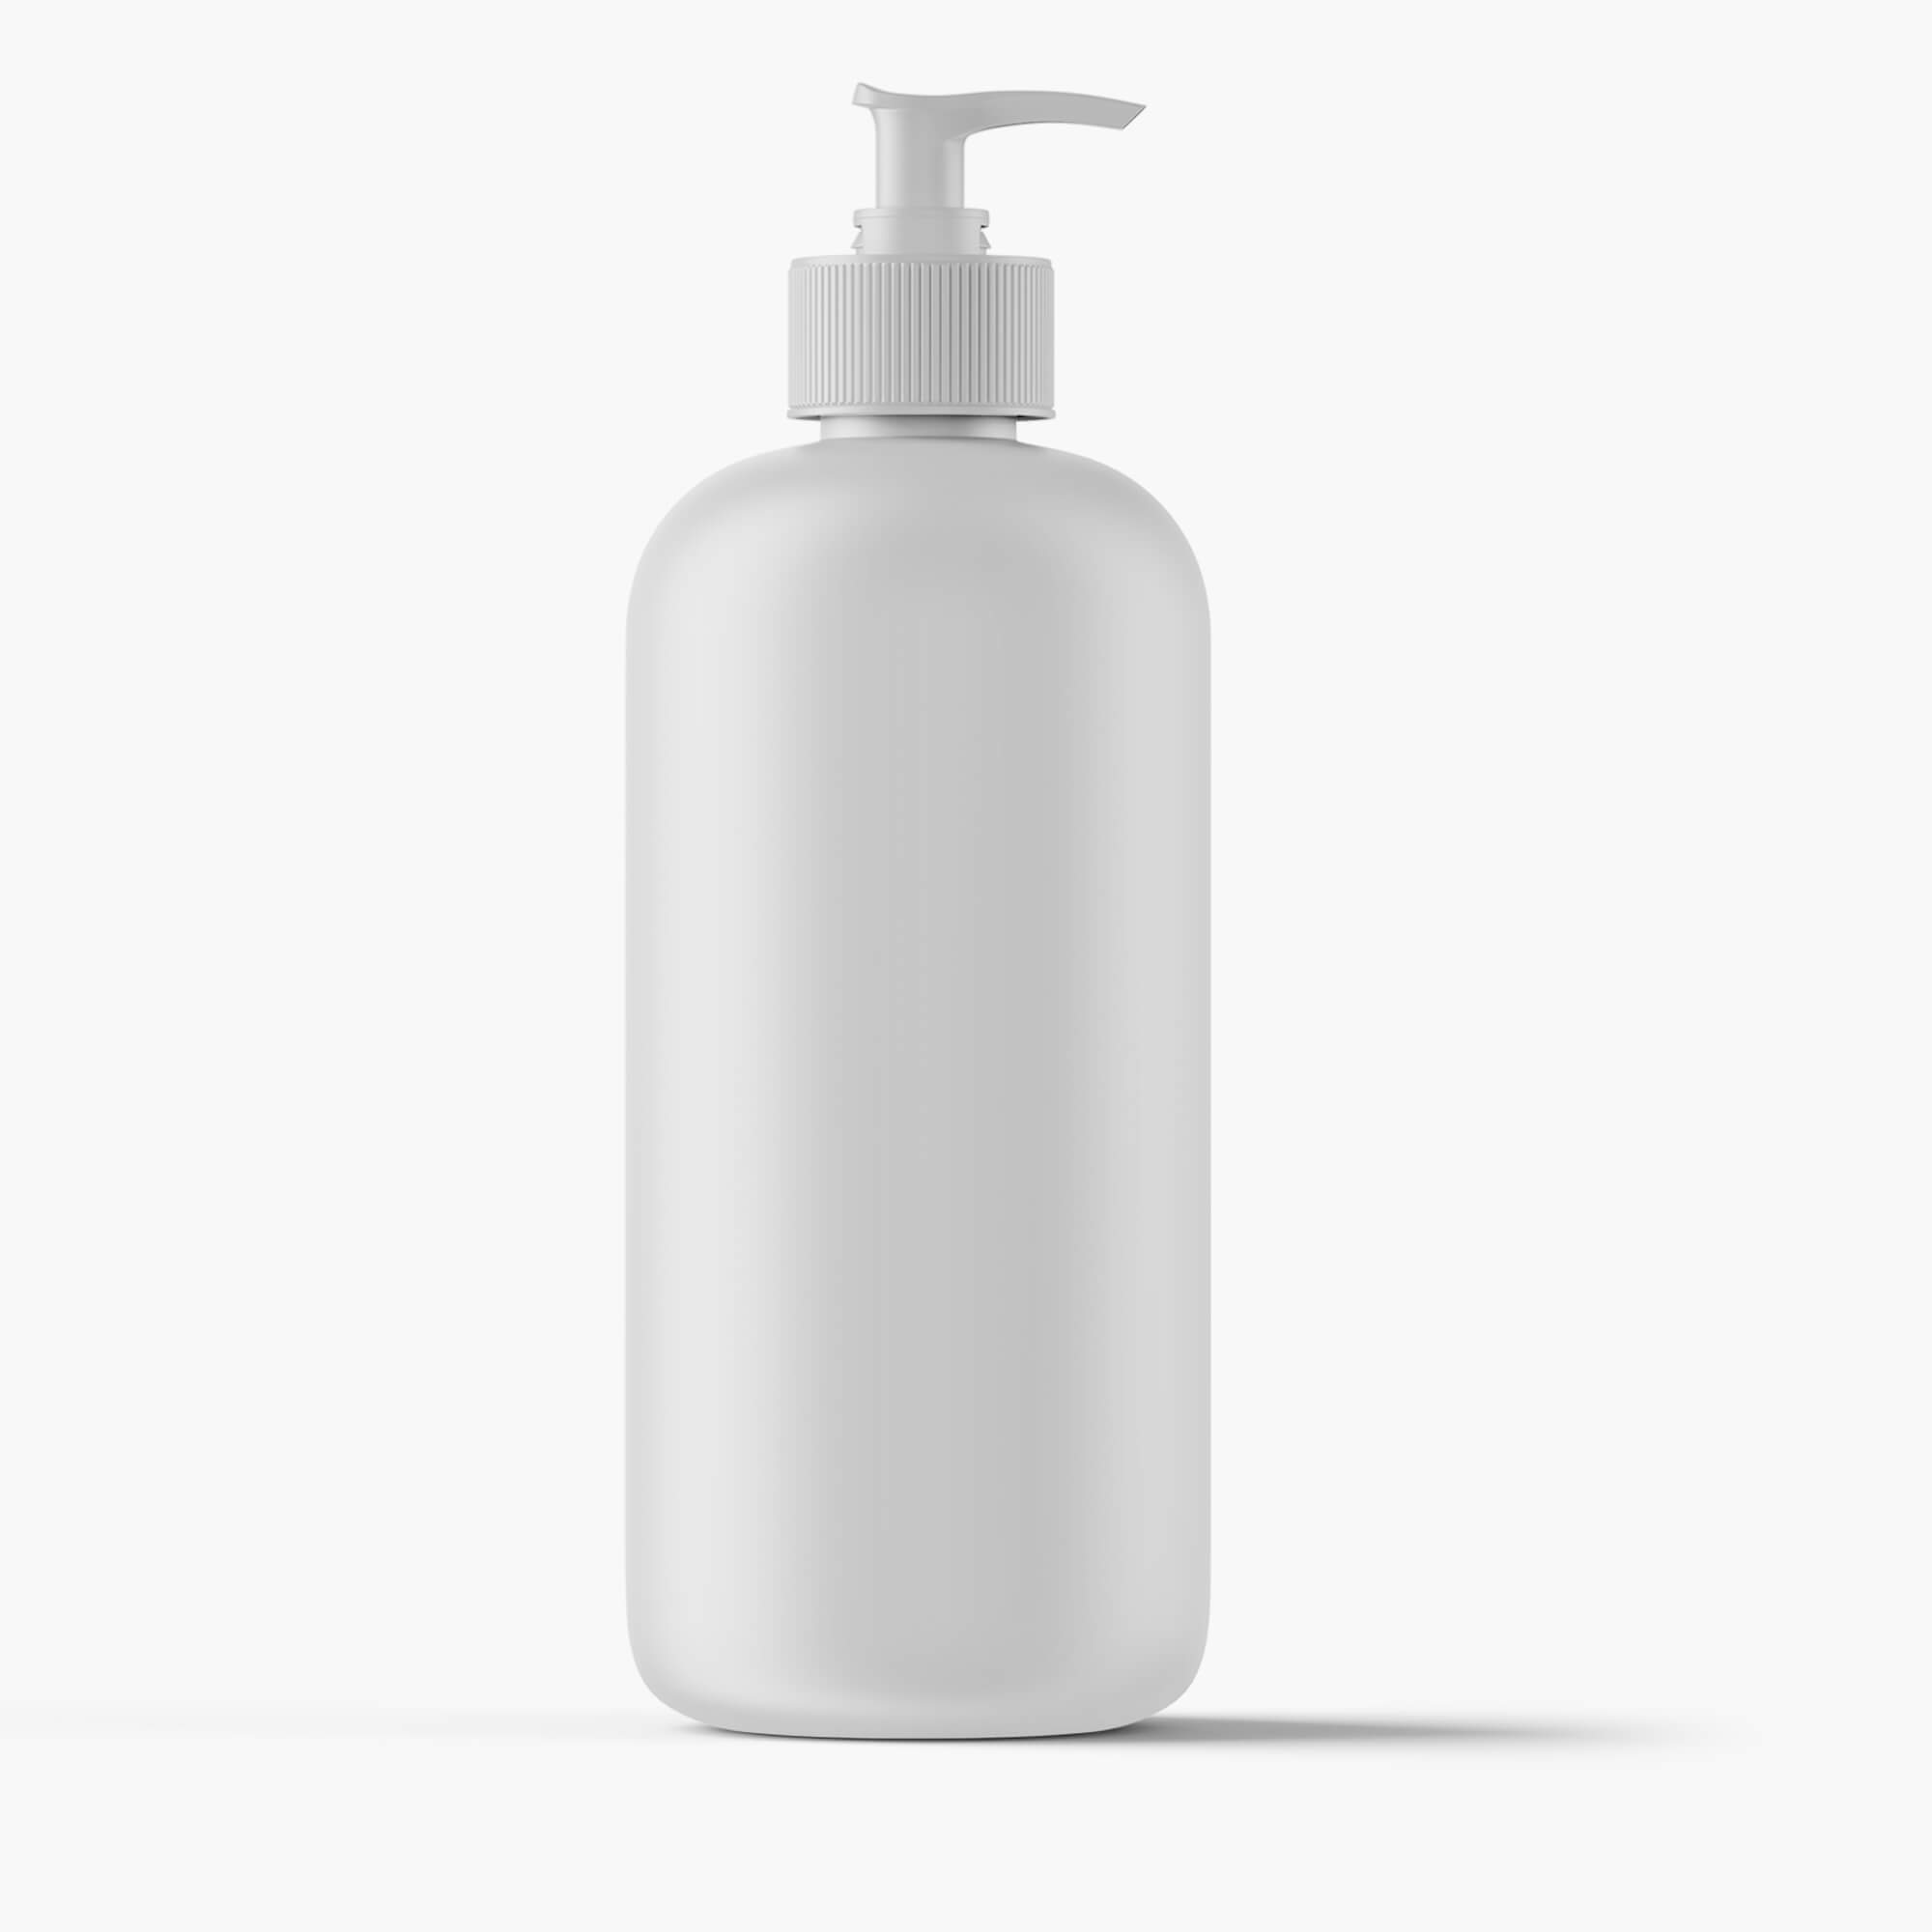 Blank Free Lotion Bottle Mockup PSD Template